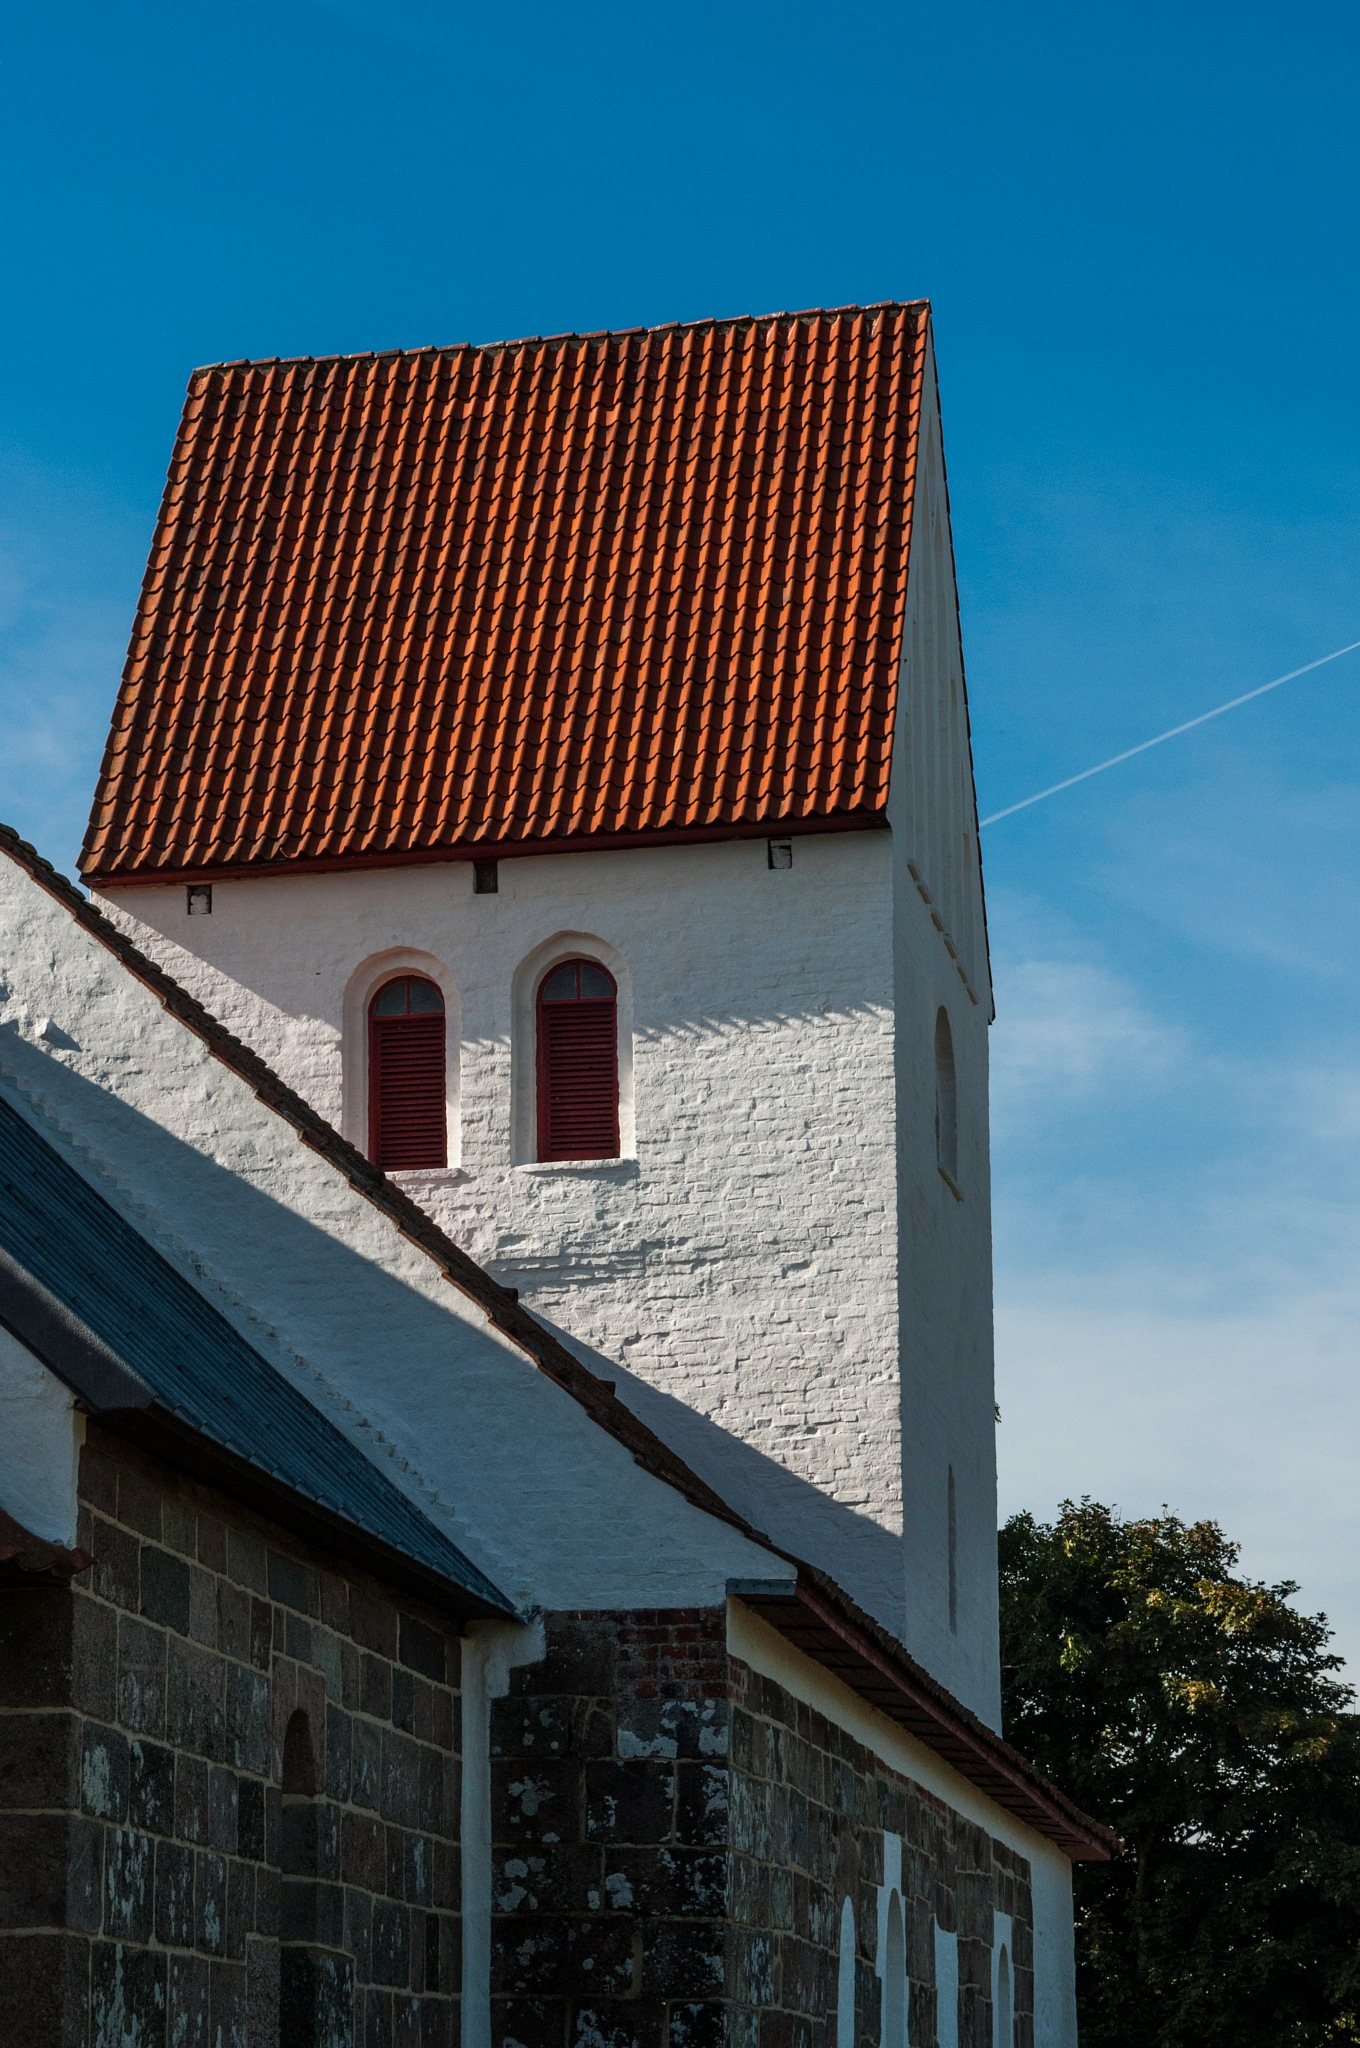 Another angle on the bell tower by Steen Skov